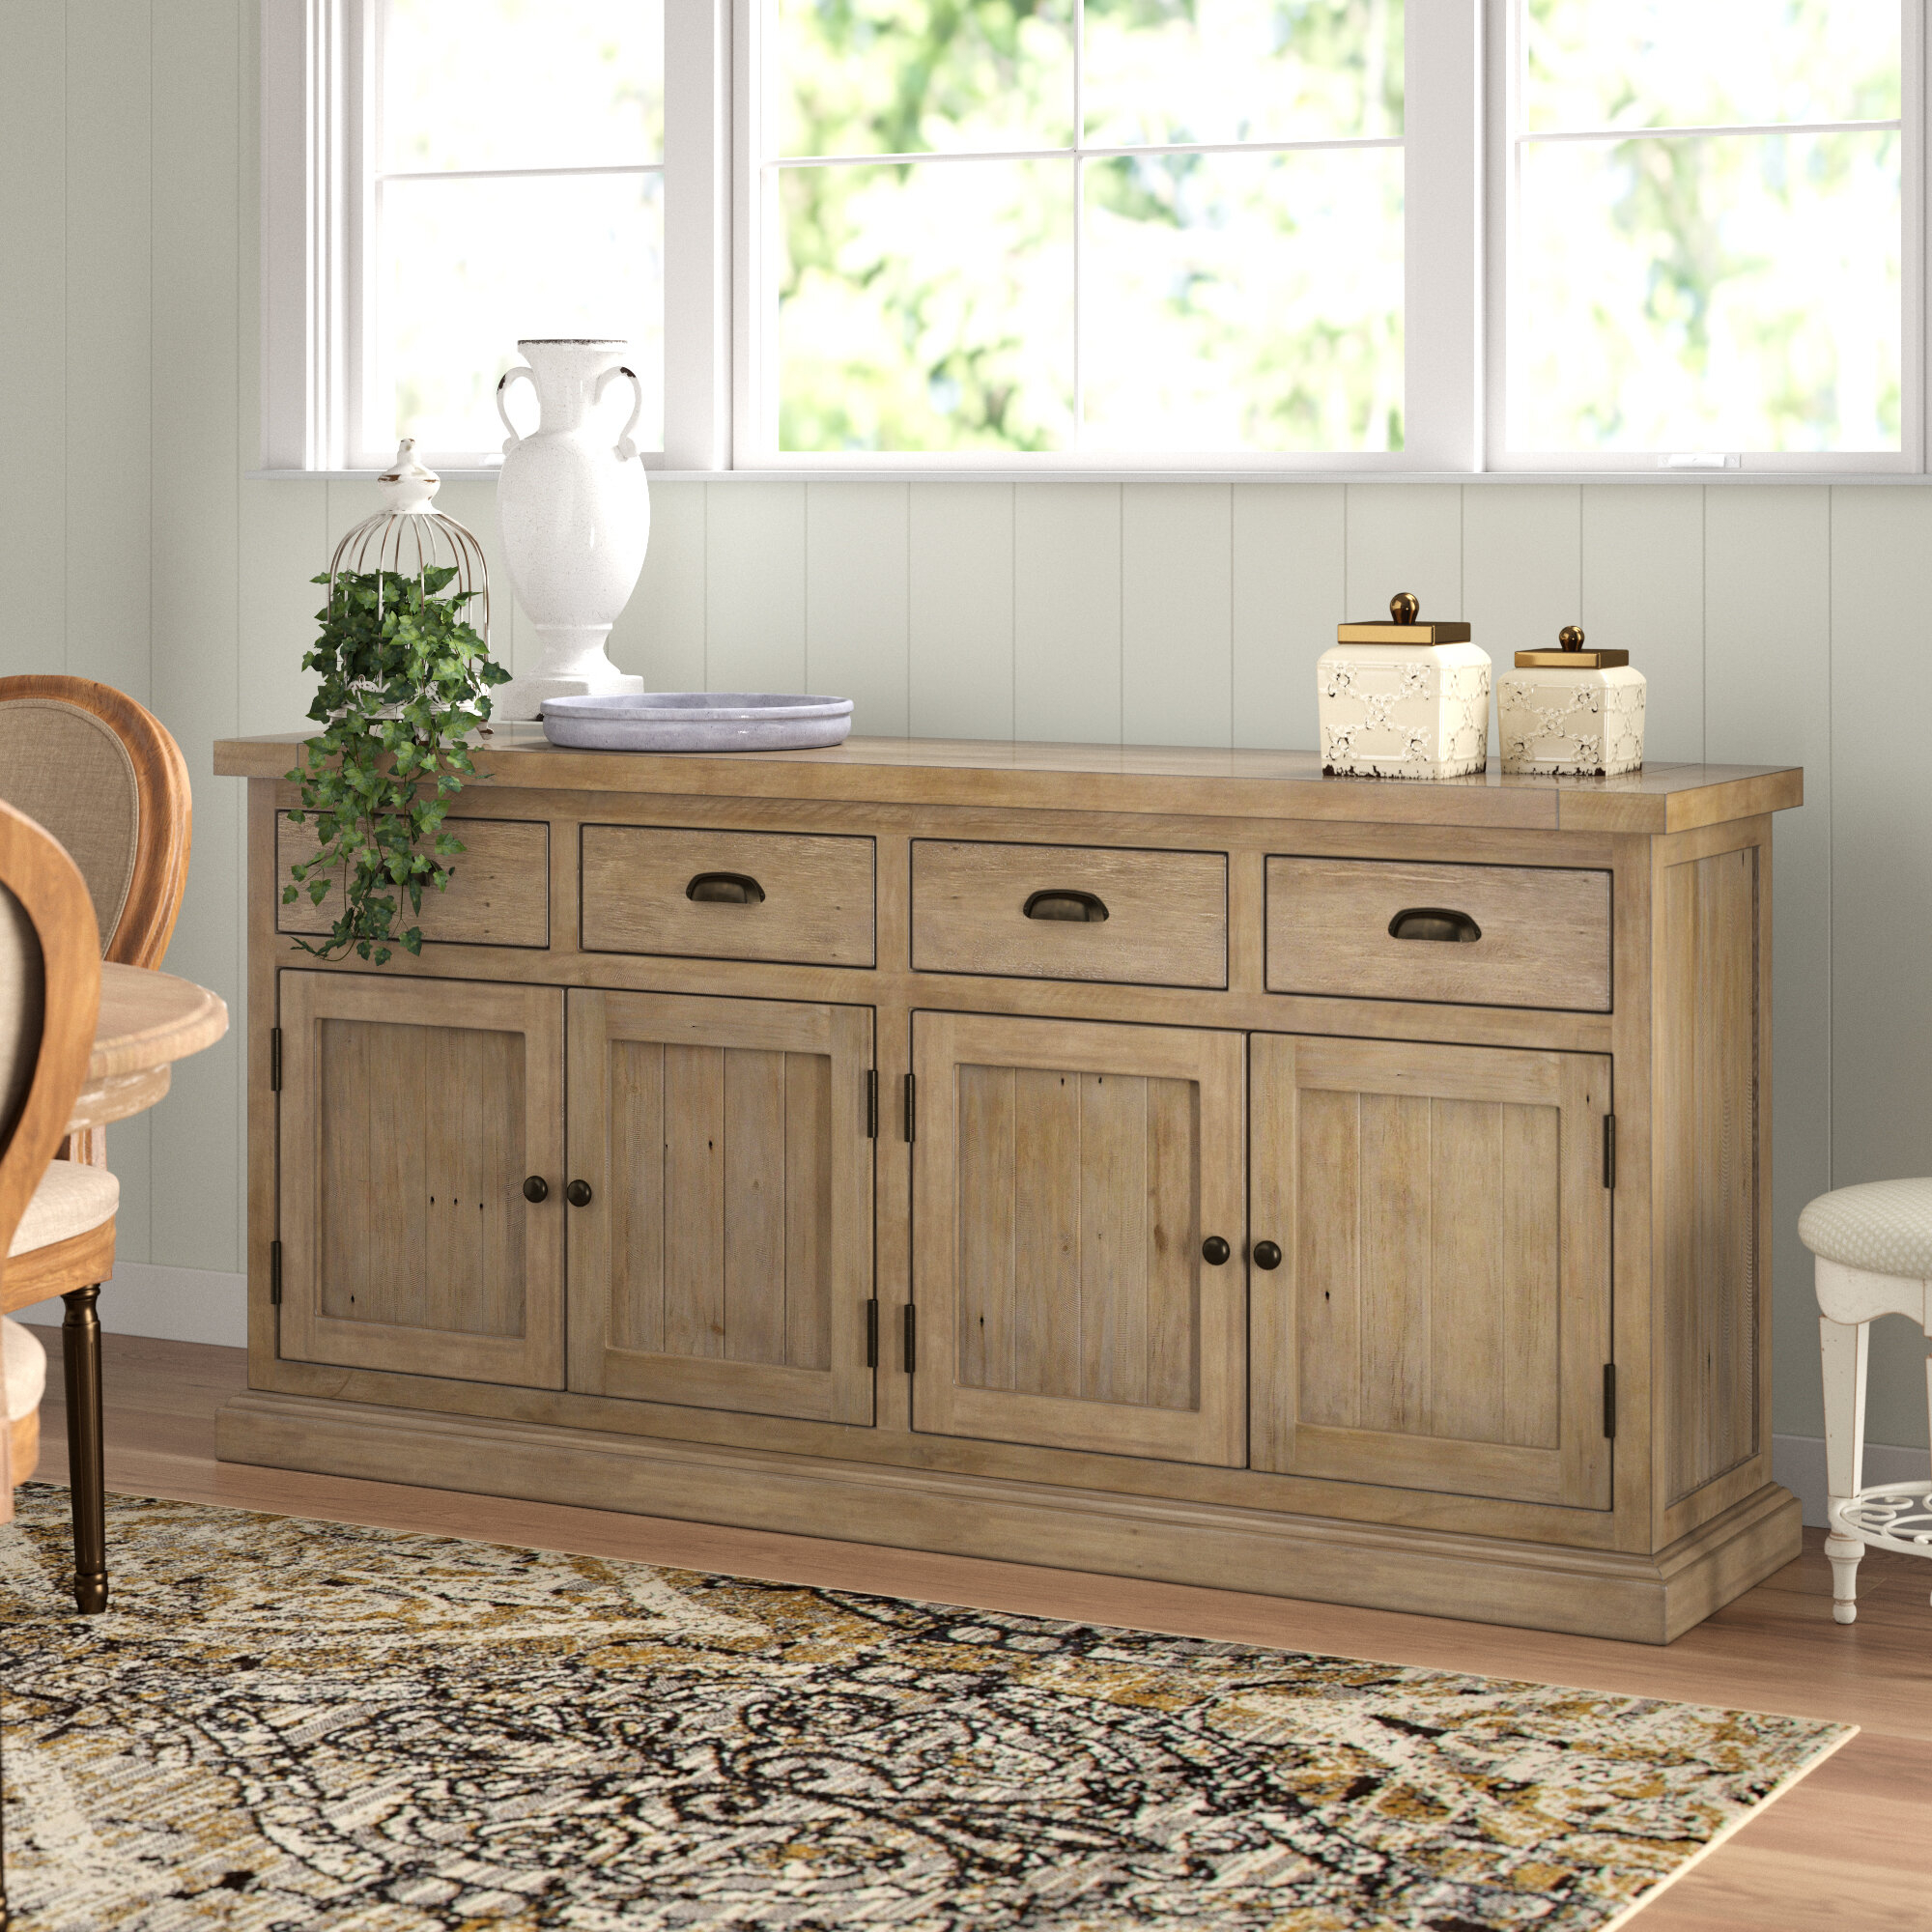 Lark Manor Gertrude Sideboard & Reviews   Wayfair Within Best And Newest Gertrude Sideboards (View 3 of 20)